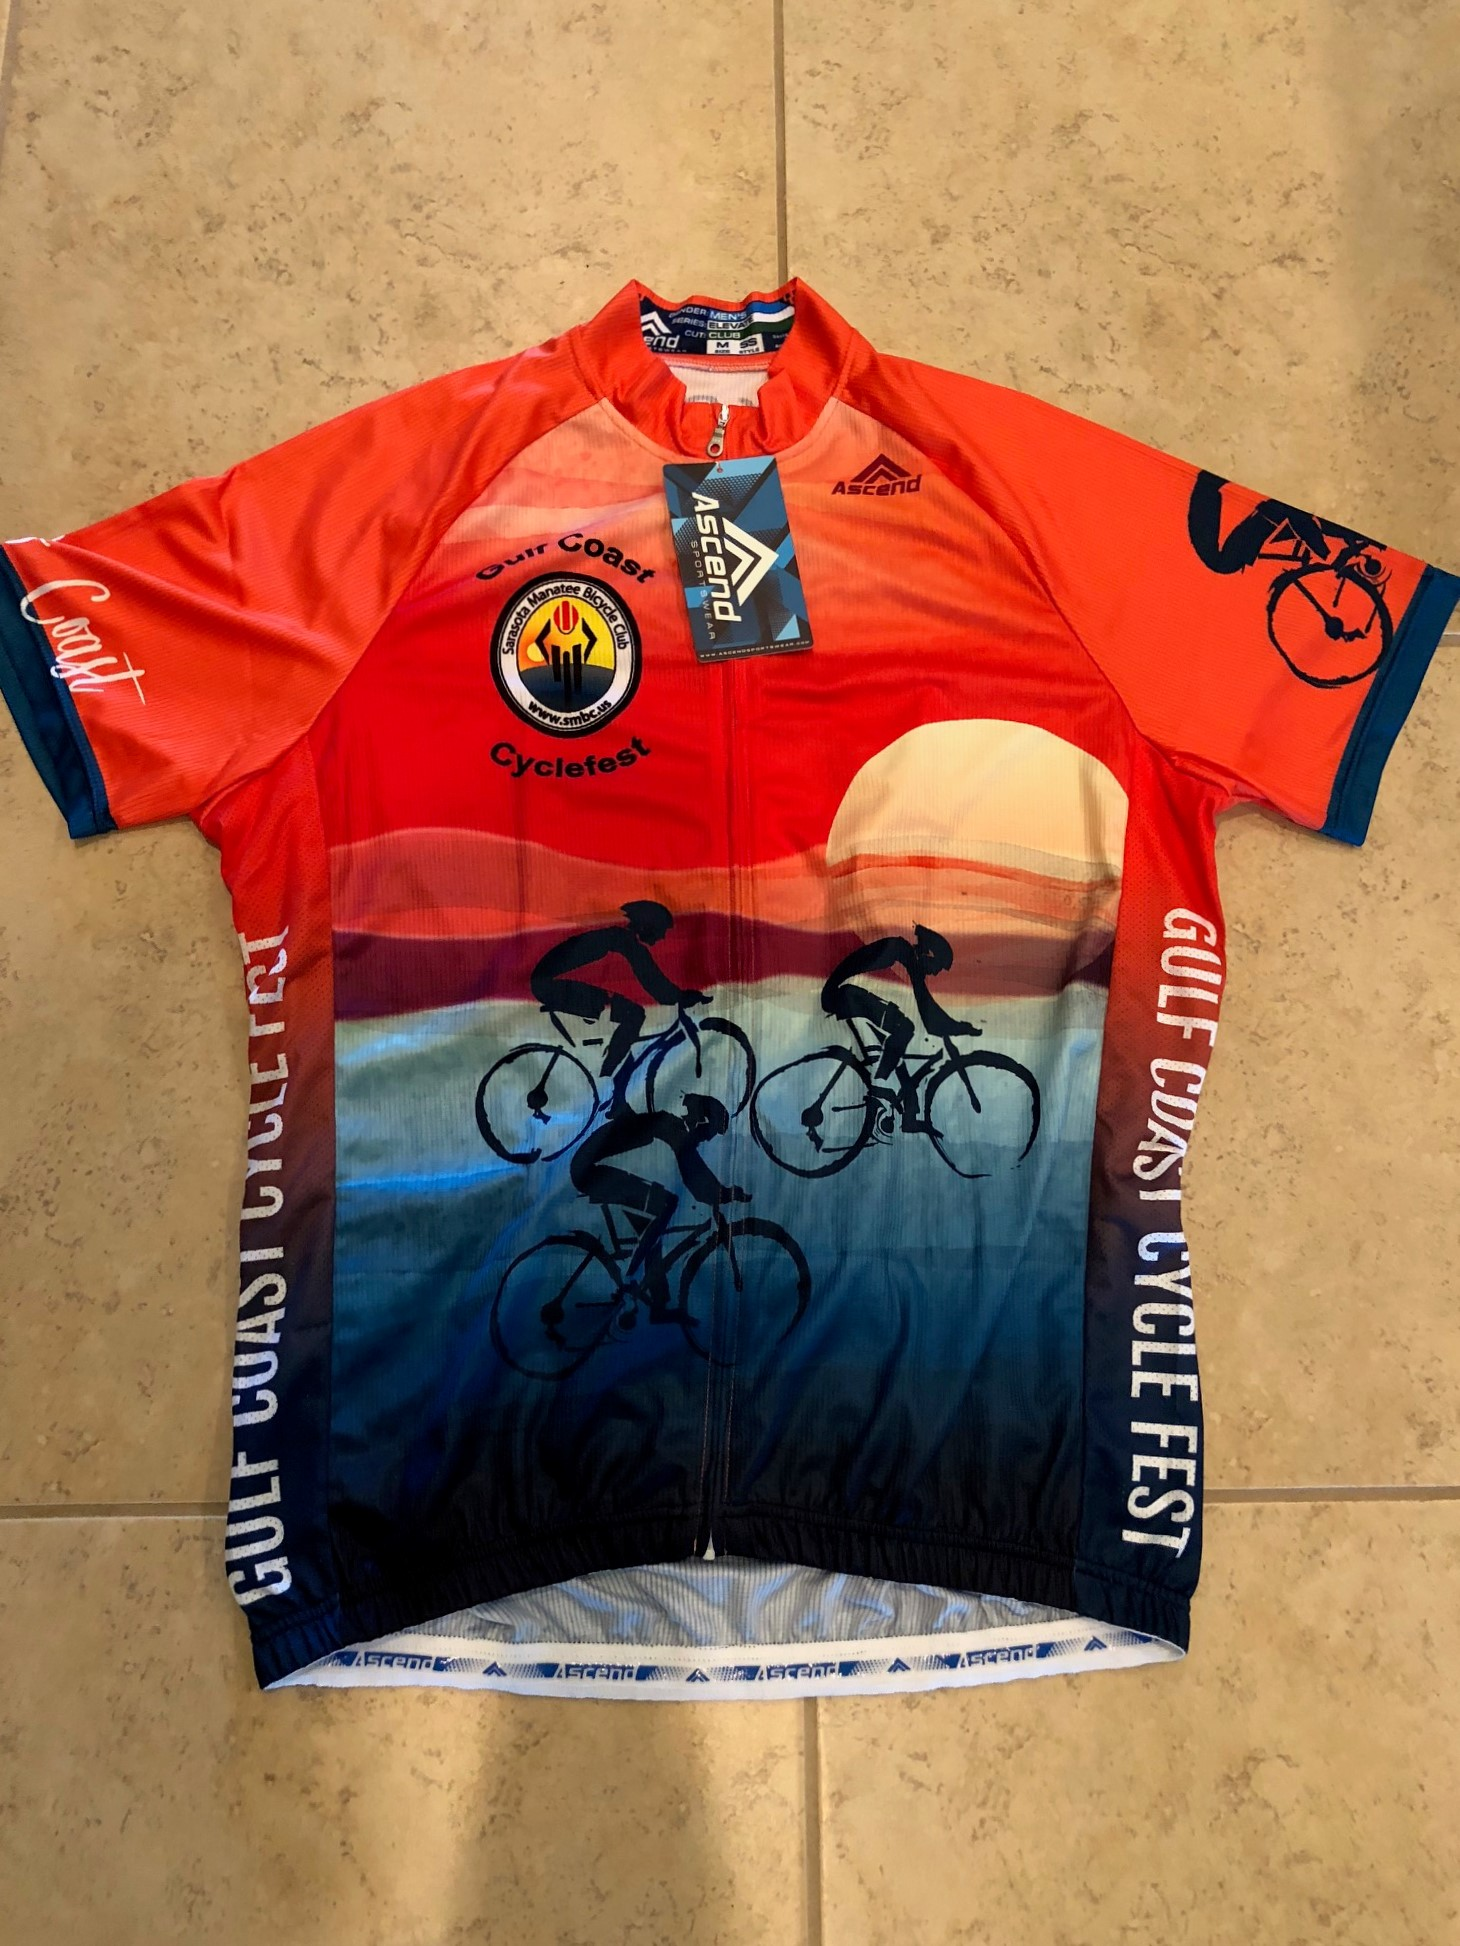 cyclefest 2018 jersey